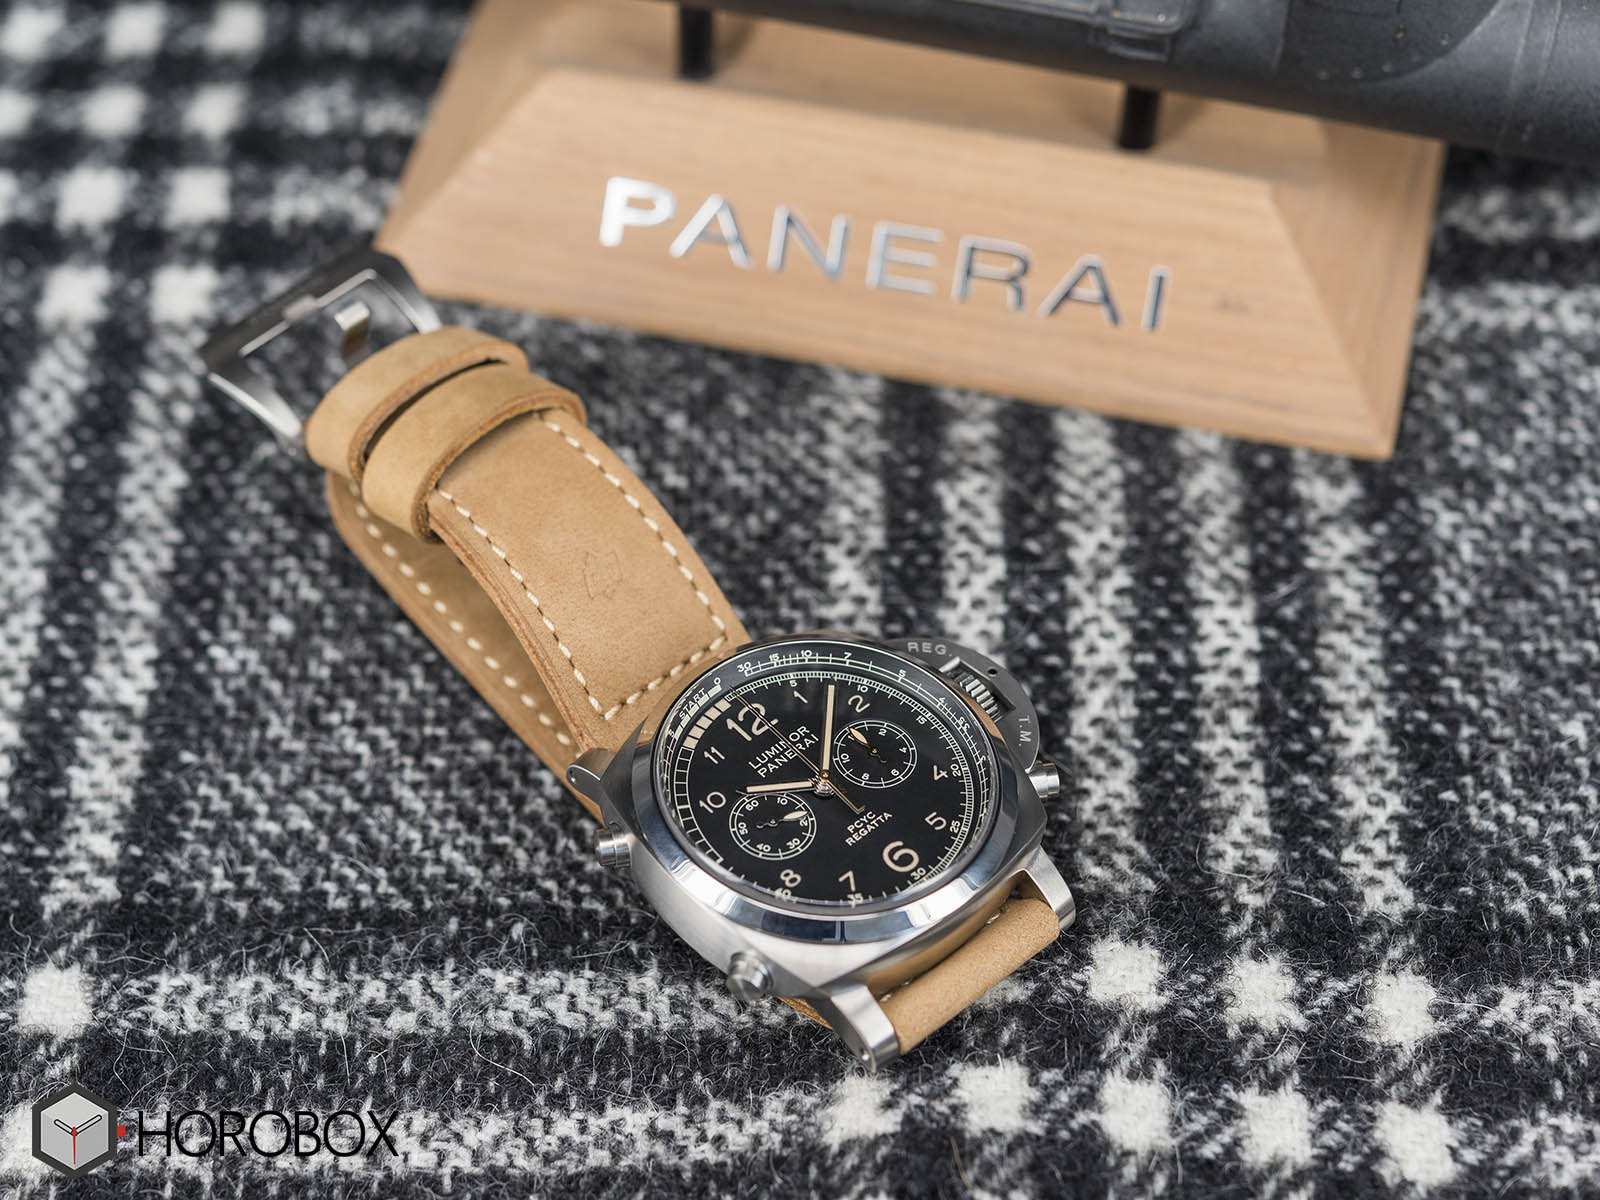 panerai-luminor-1950-pcyc-regatta-pam00652-10.jpg